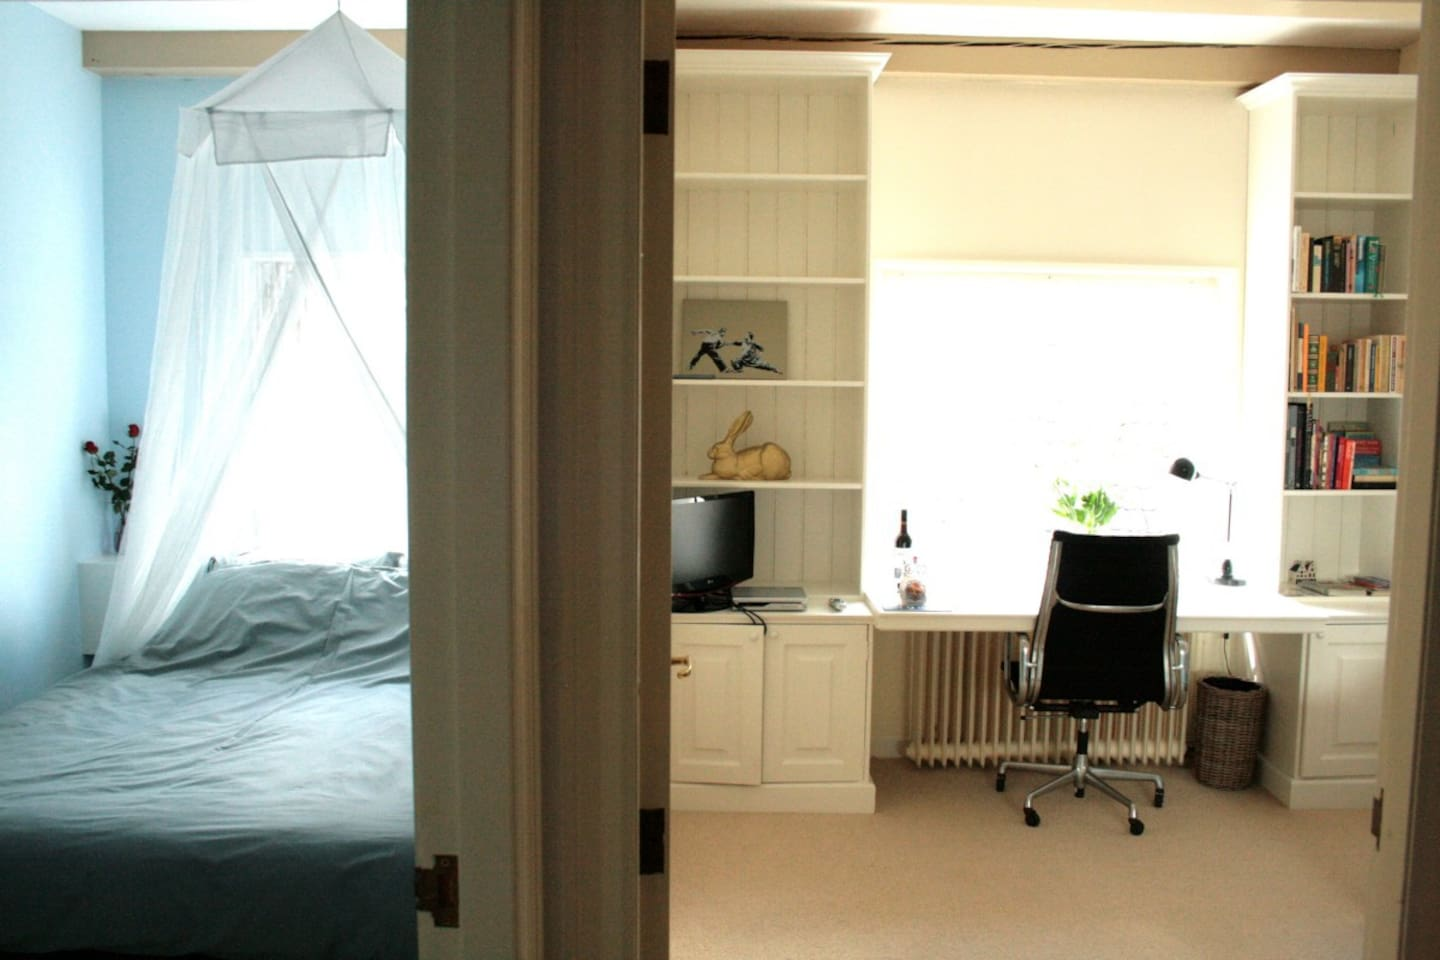 Your cosy home on beautiful canal Herengracht, right in the city centre - quiet and with lots of privacy